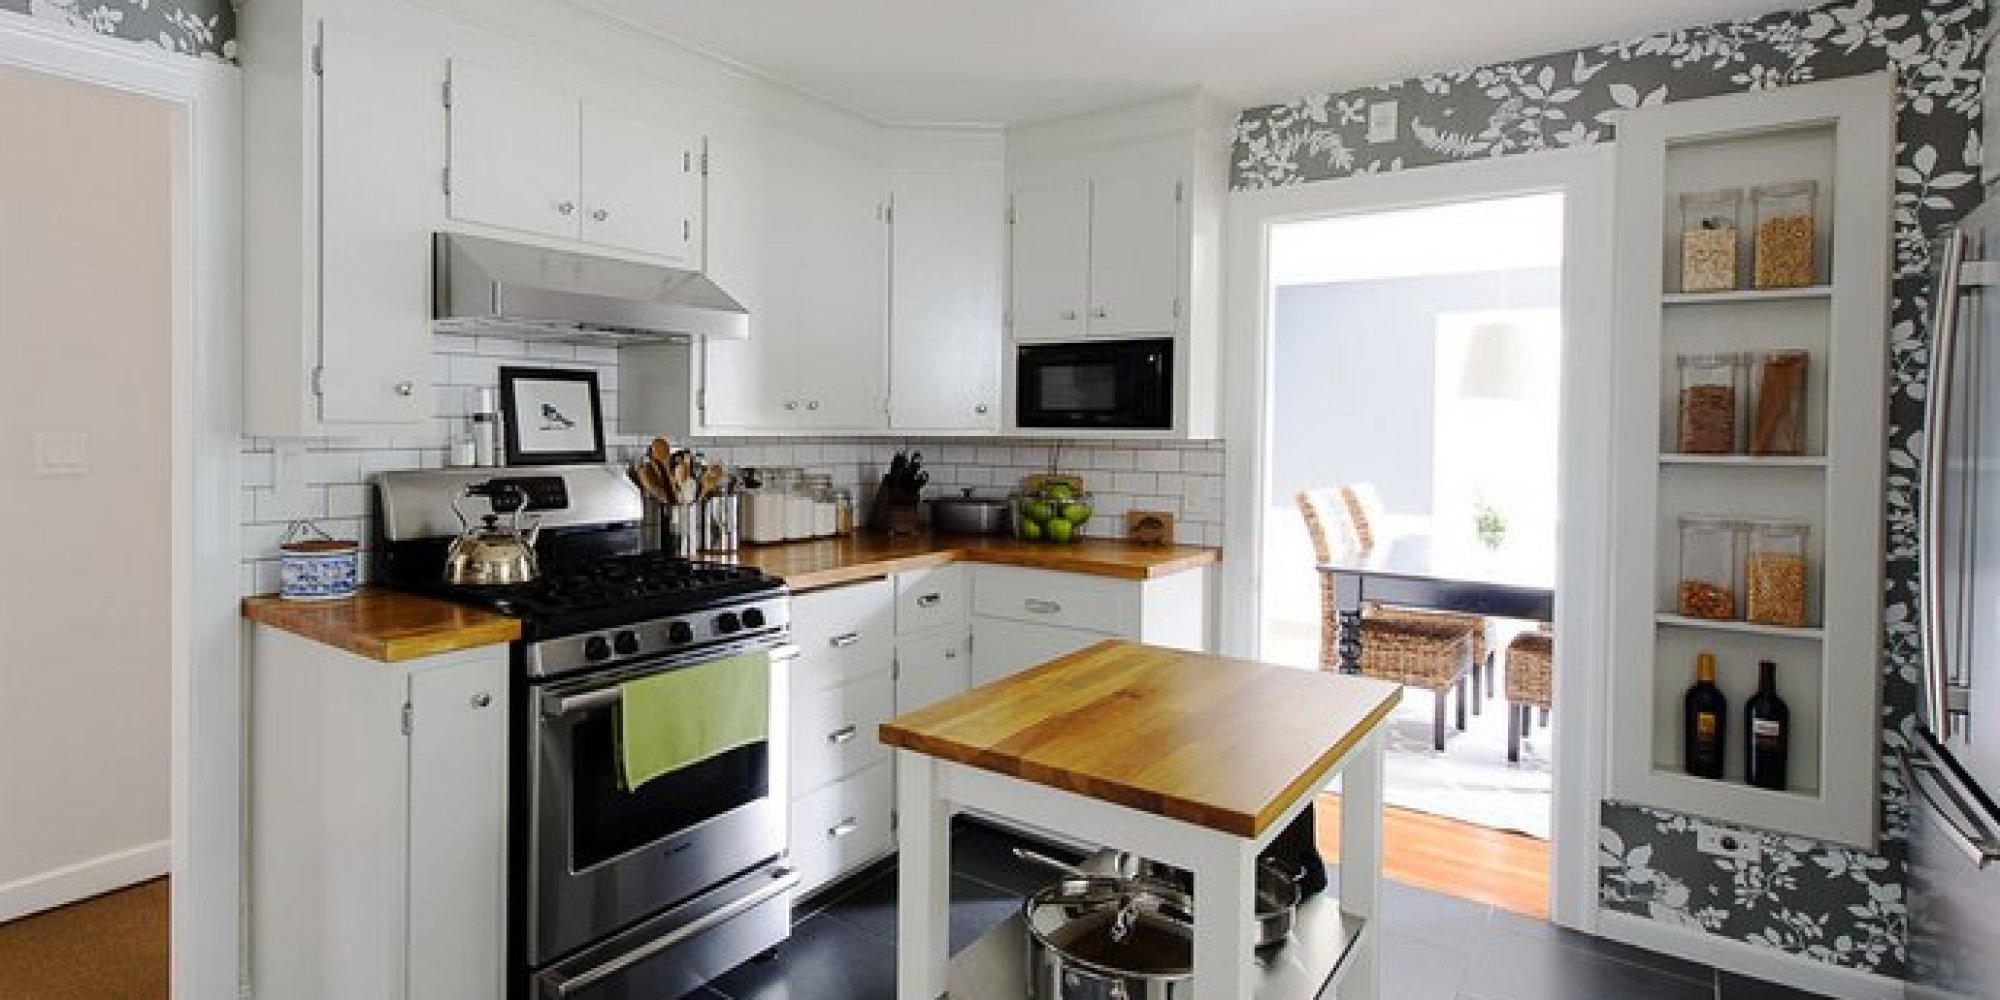 19 inexpensive ways to fix up your kitchen photos huffpost home www thekitchenwright com